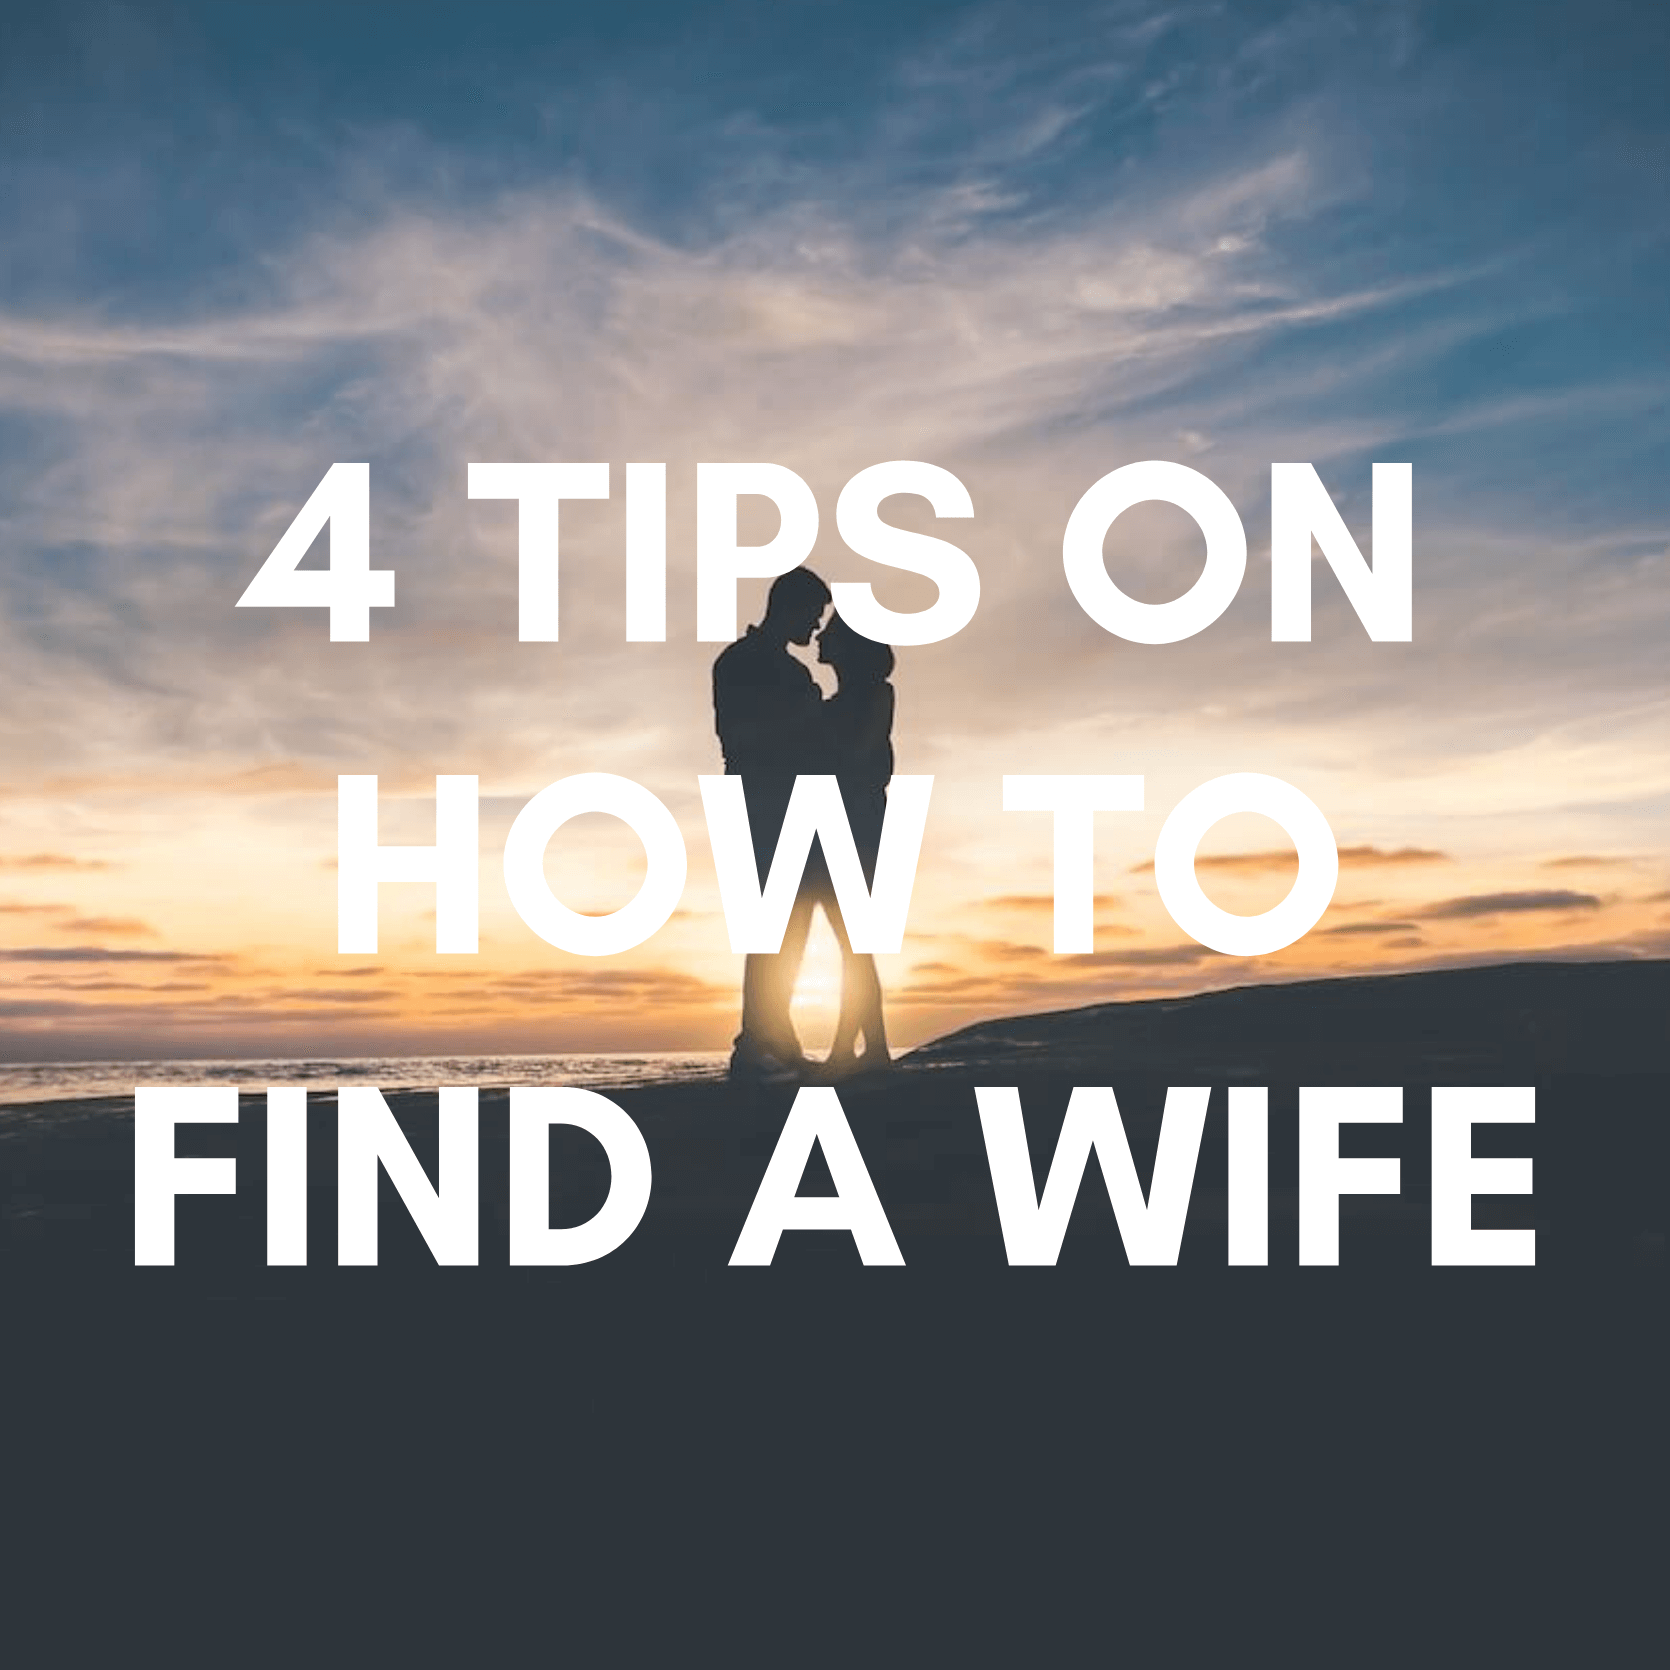 JHH 003: 4 Tips on Finding a Wife